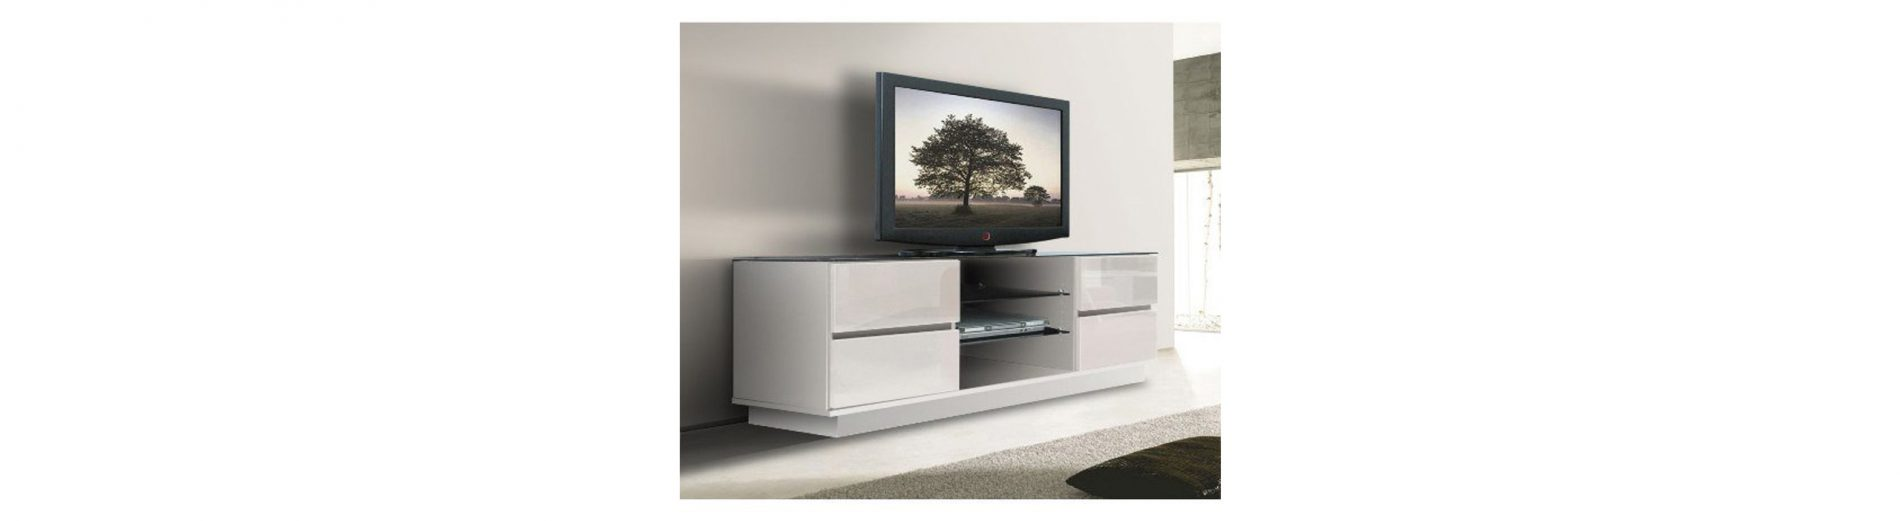 Tips on How to Choose the Right Plasma TV Stand for Your Home